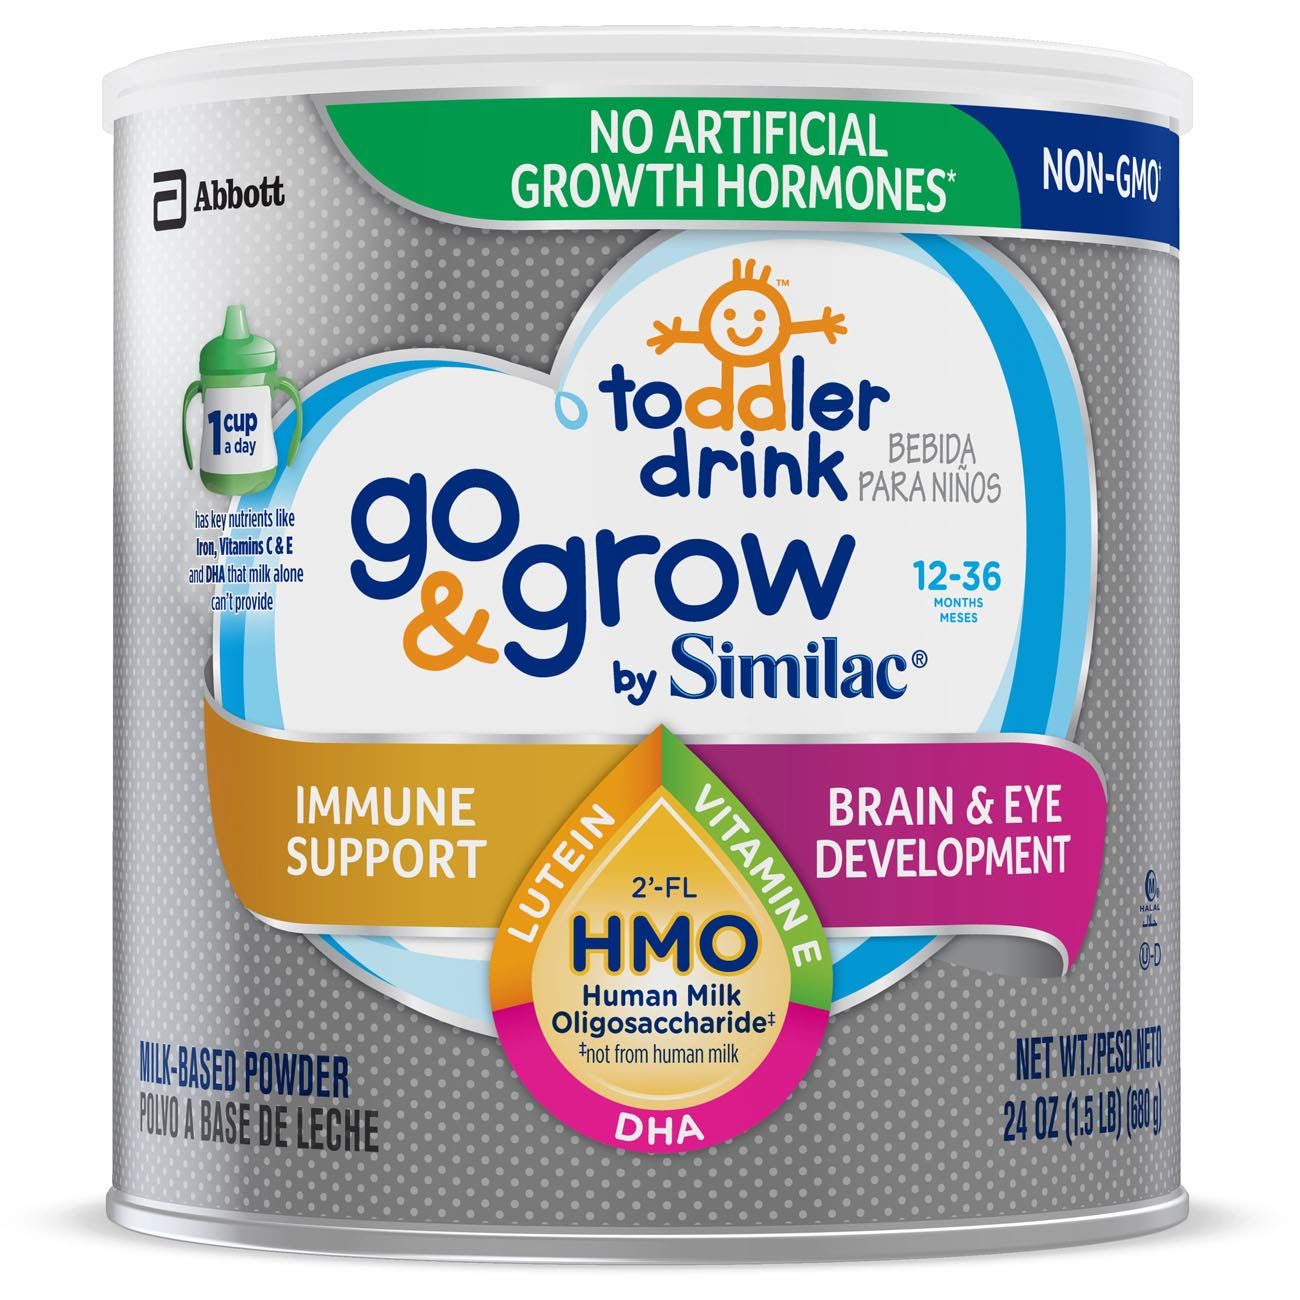 Go & Grow by Similac Toddler Drink with 2-FL HMO for Immune Support